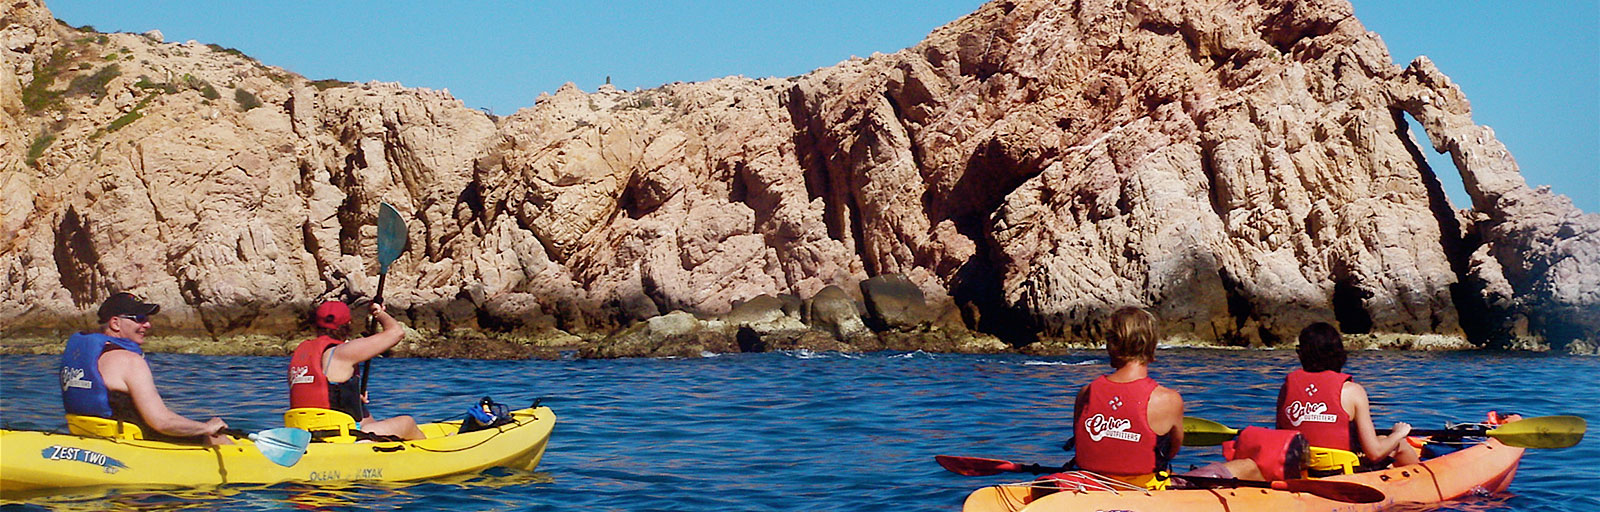 Sea Kayaking & Snorkeling on a Mexico Yoga Retreat: Paddling the Sea of Cortez